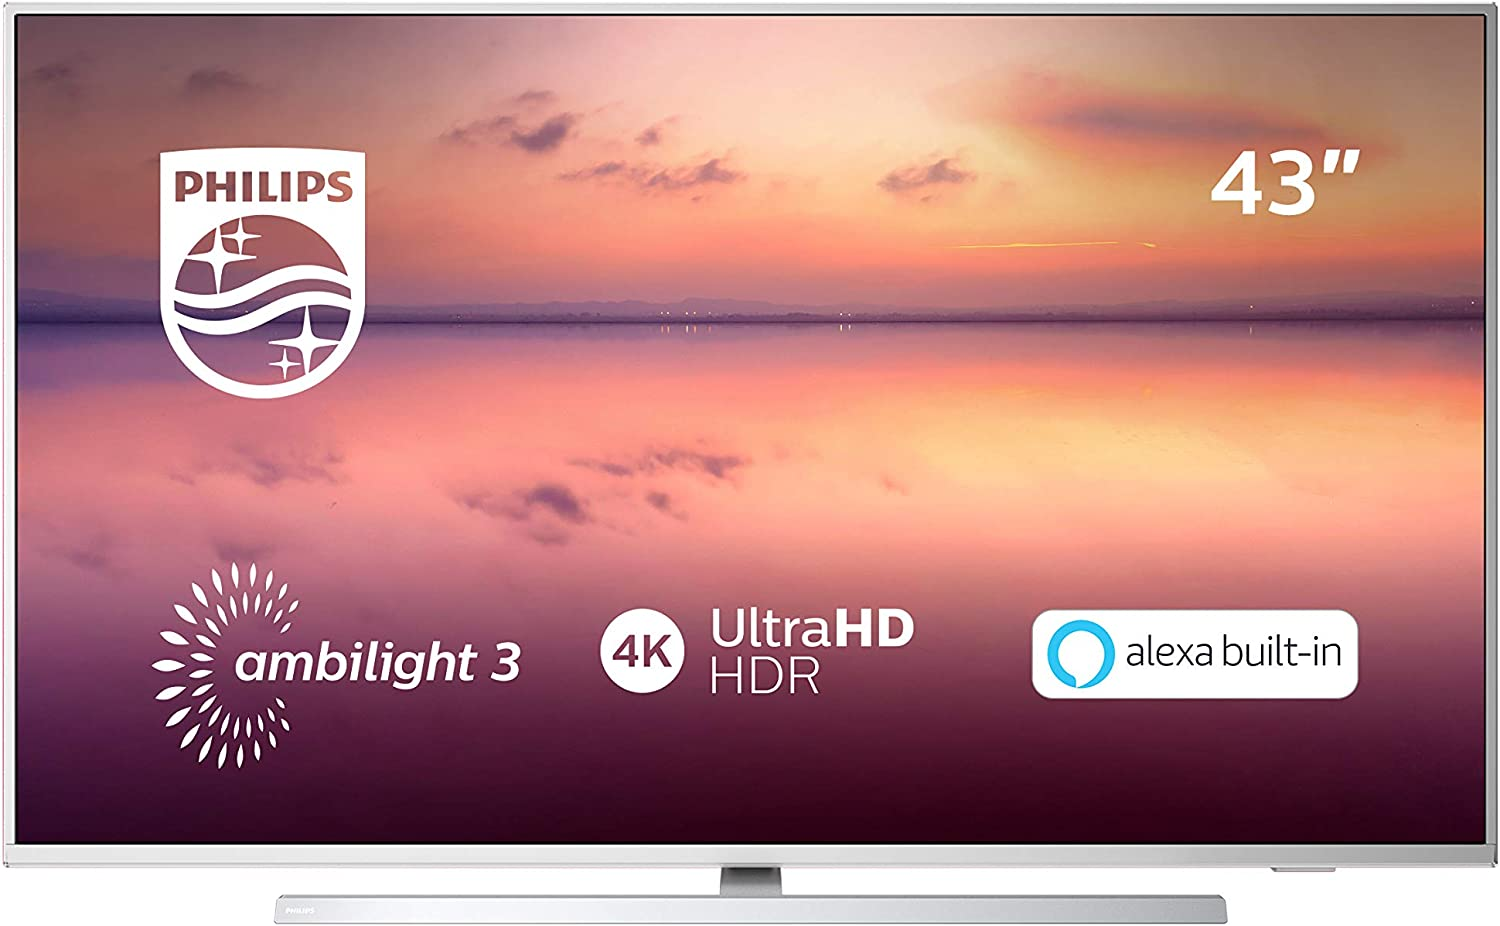 Televisión Philips Ultra HD 43PUS6814/12 con Alexa integrada, 43 pulgadas, Smart TV: Amazon.es: Electrónica